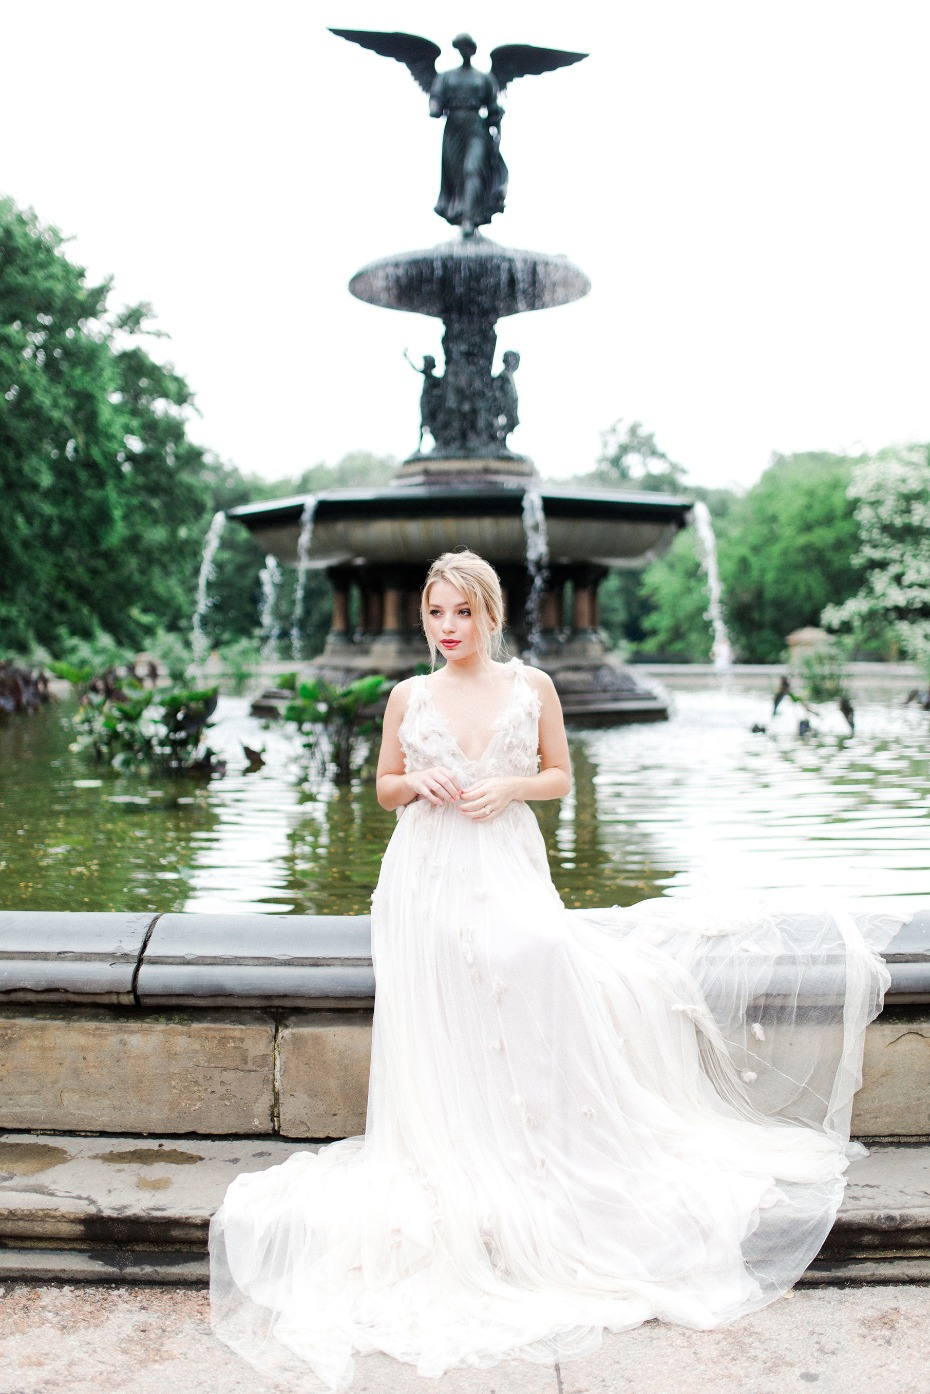 Flowing Samuelle Couture wedding dress